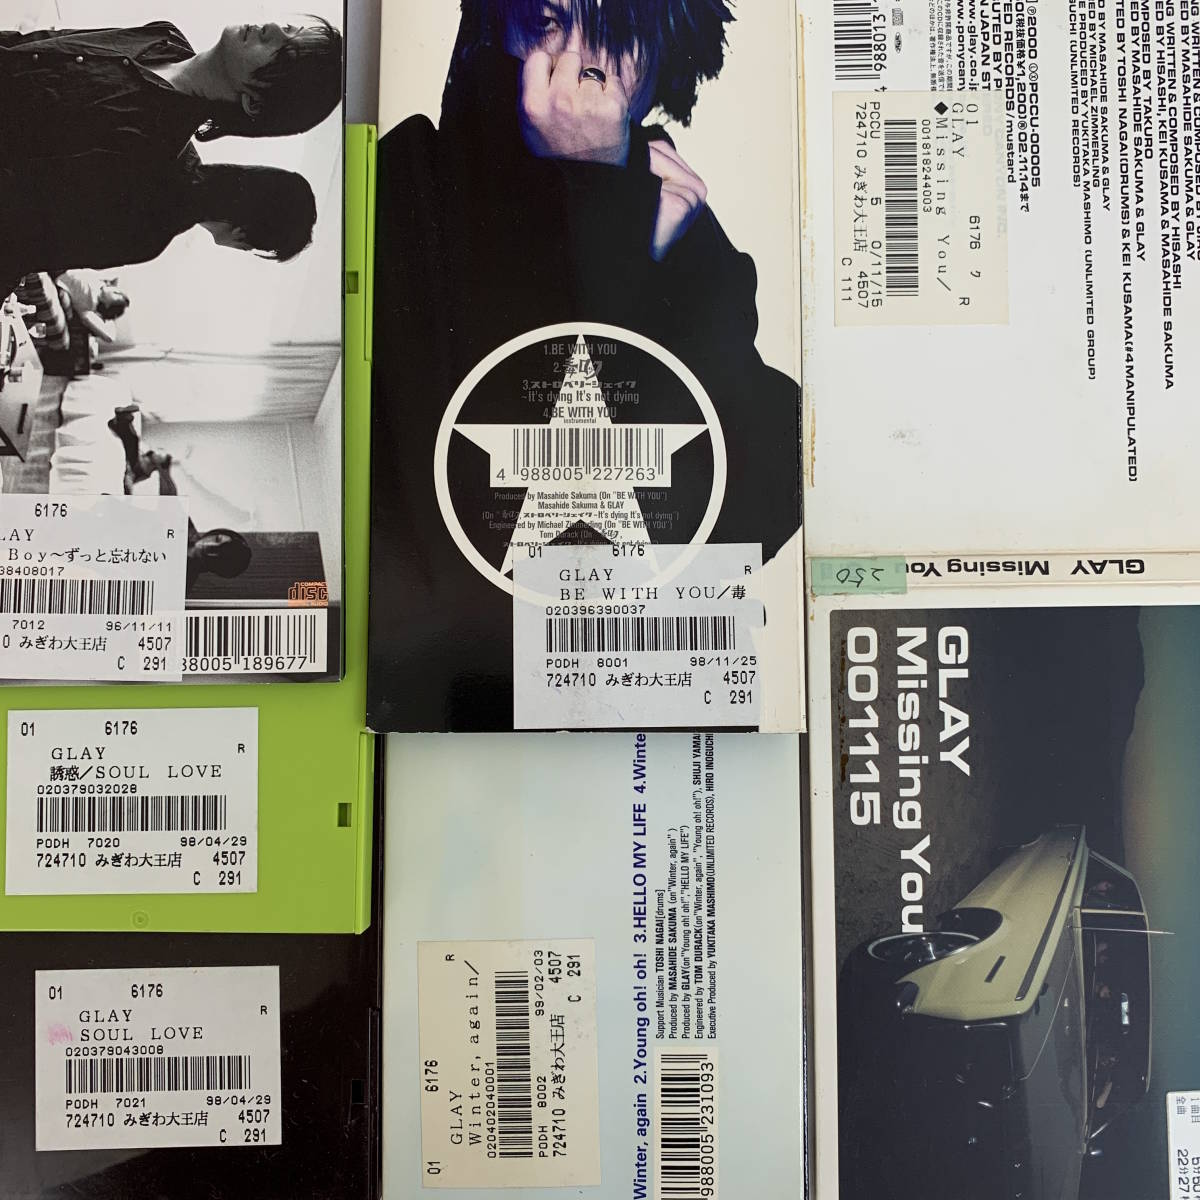 GLAY 口唇、REVIEW、Missing You、Soul Love、誘惑、a Boy、Winter,again、Be with You、However、9枚まとめて_画像7